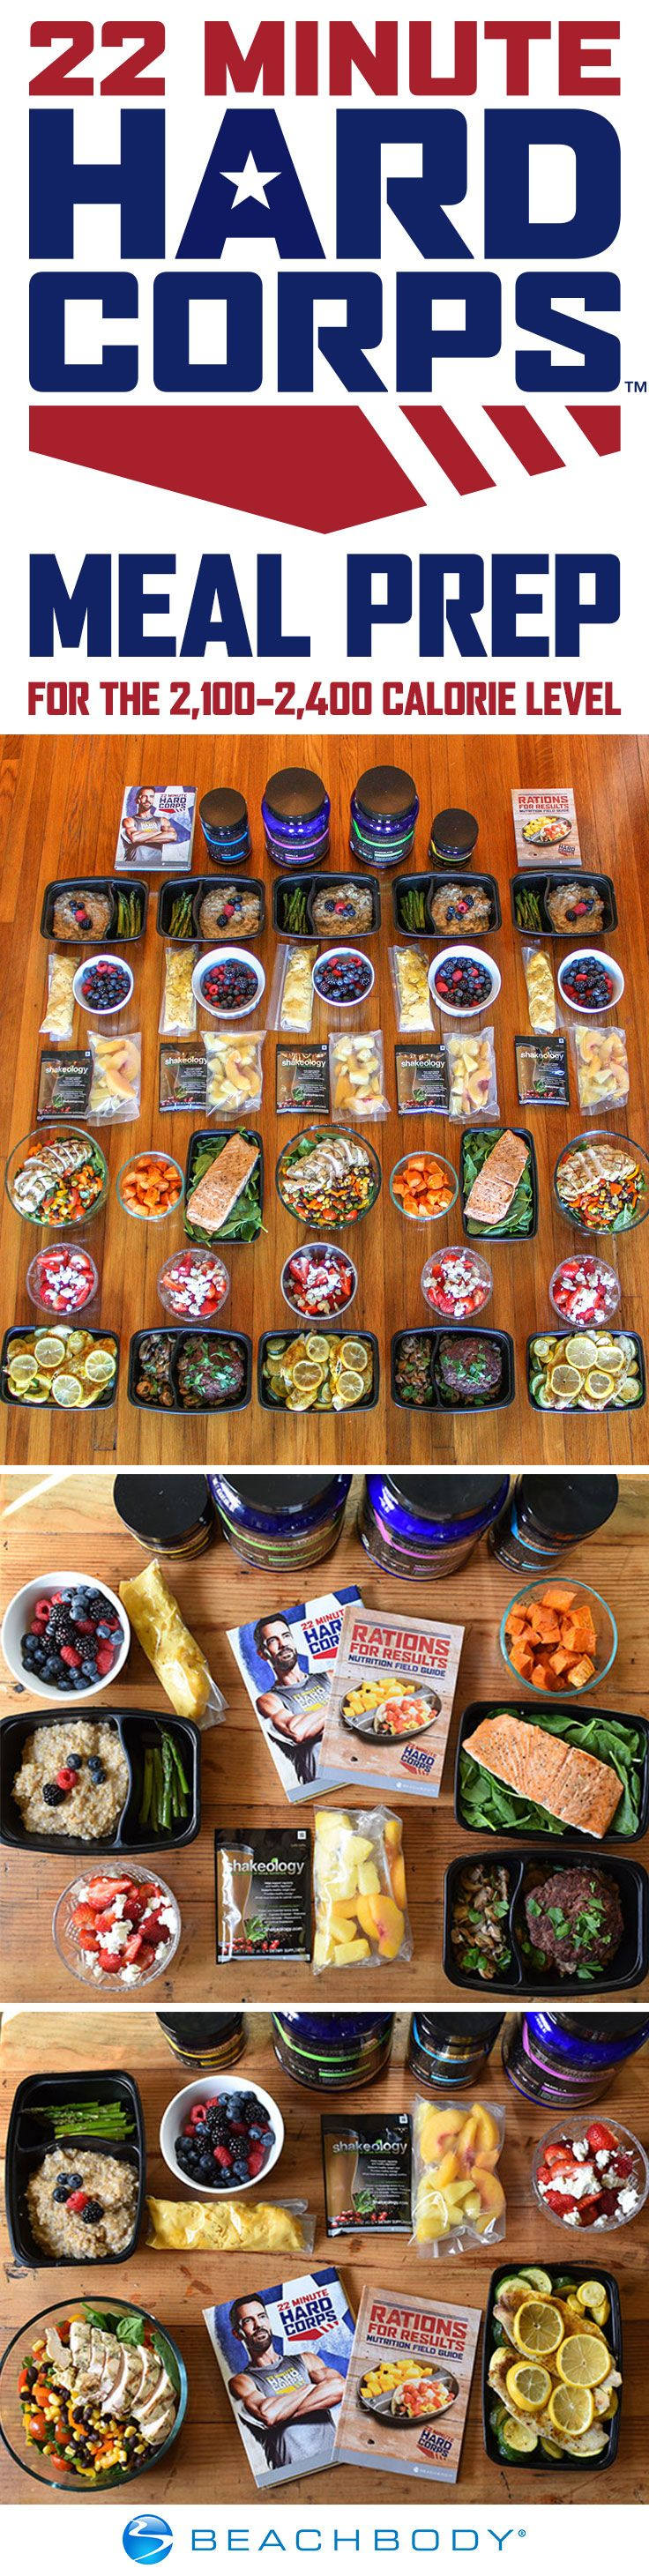 Your complete guide to 22 Minute Hard Corps Meal Prep for the 2,100-2,400 calorie level